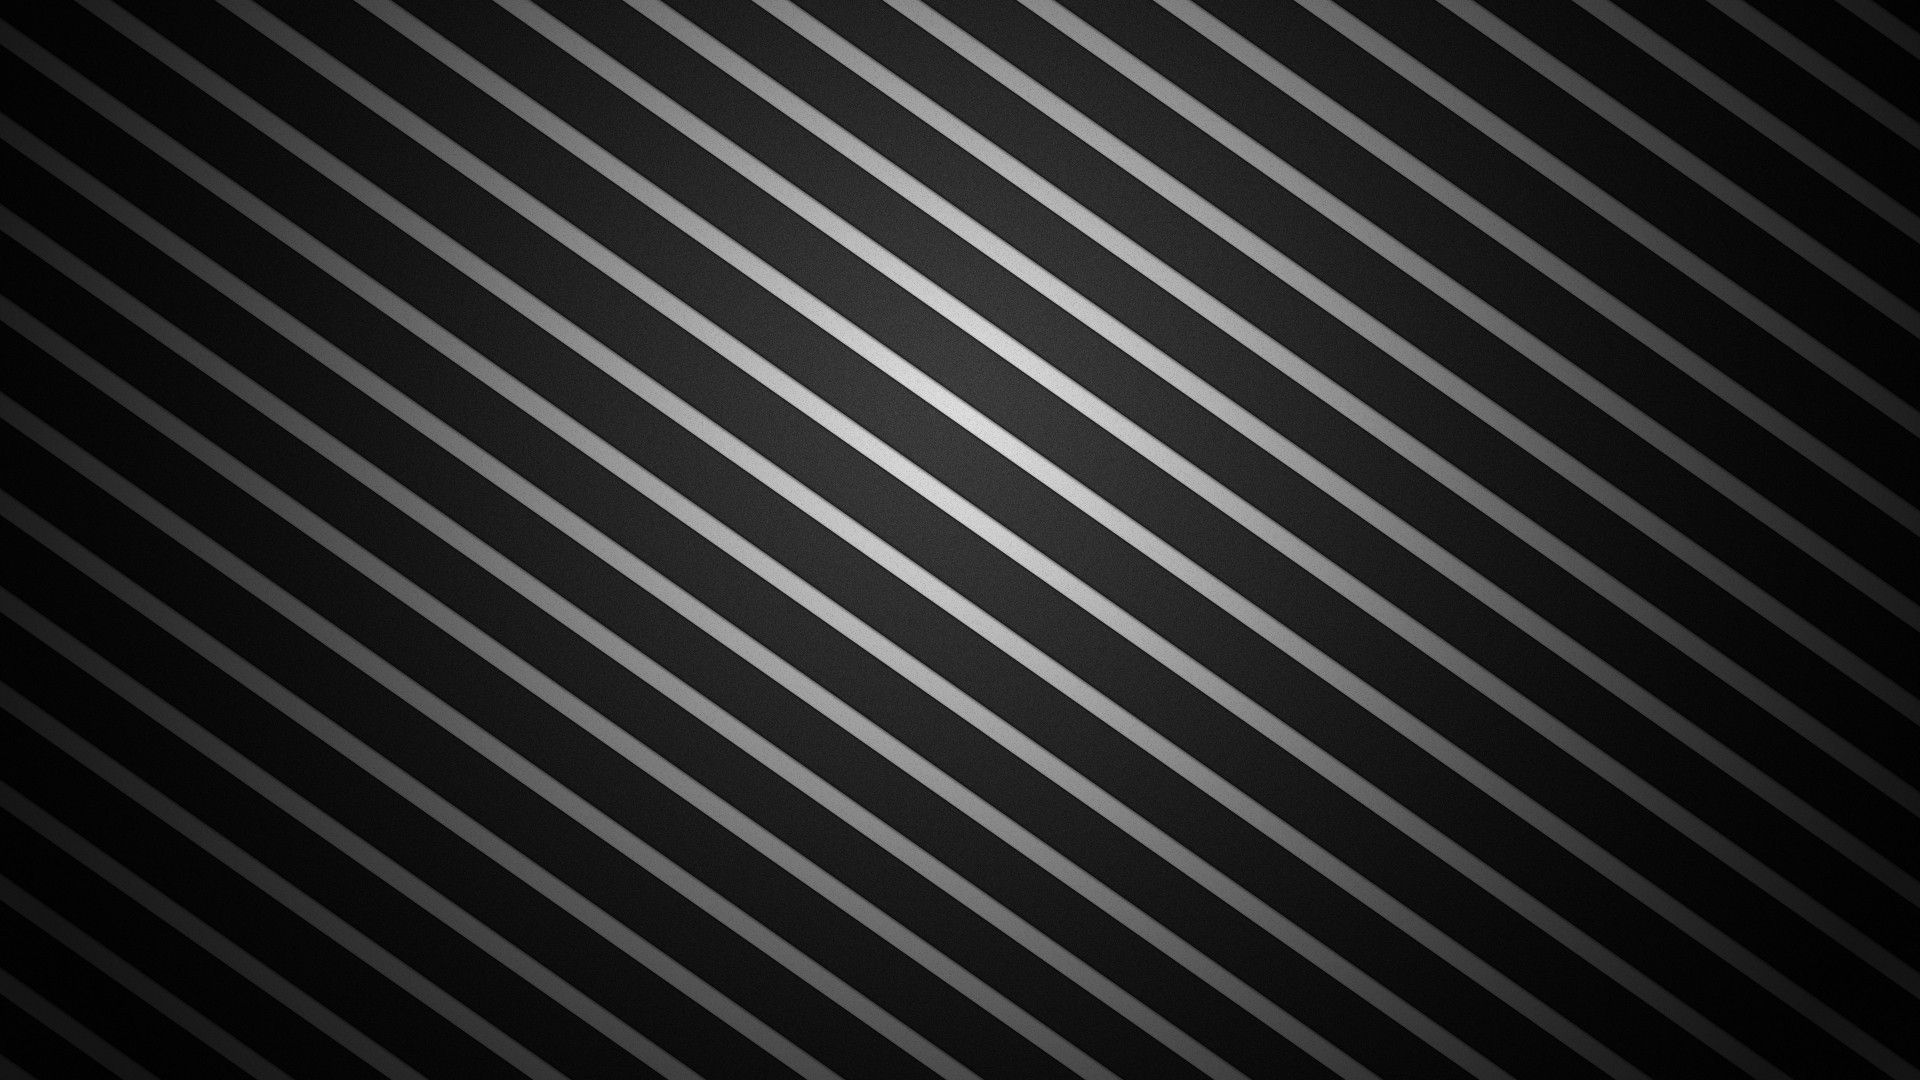 abstract black wallpapers wallpaper images 1920x1080 1920x1080